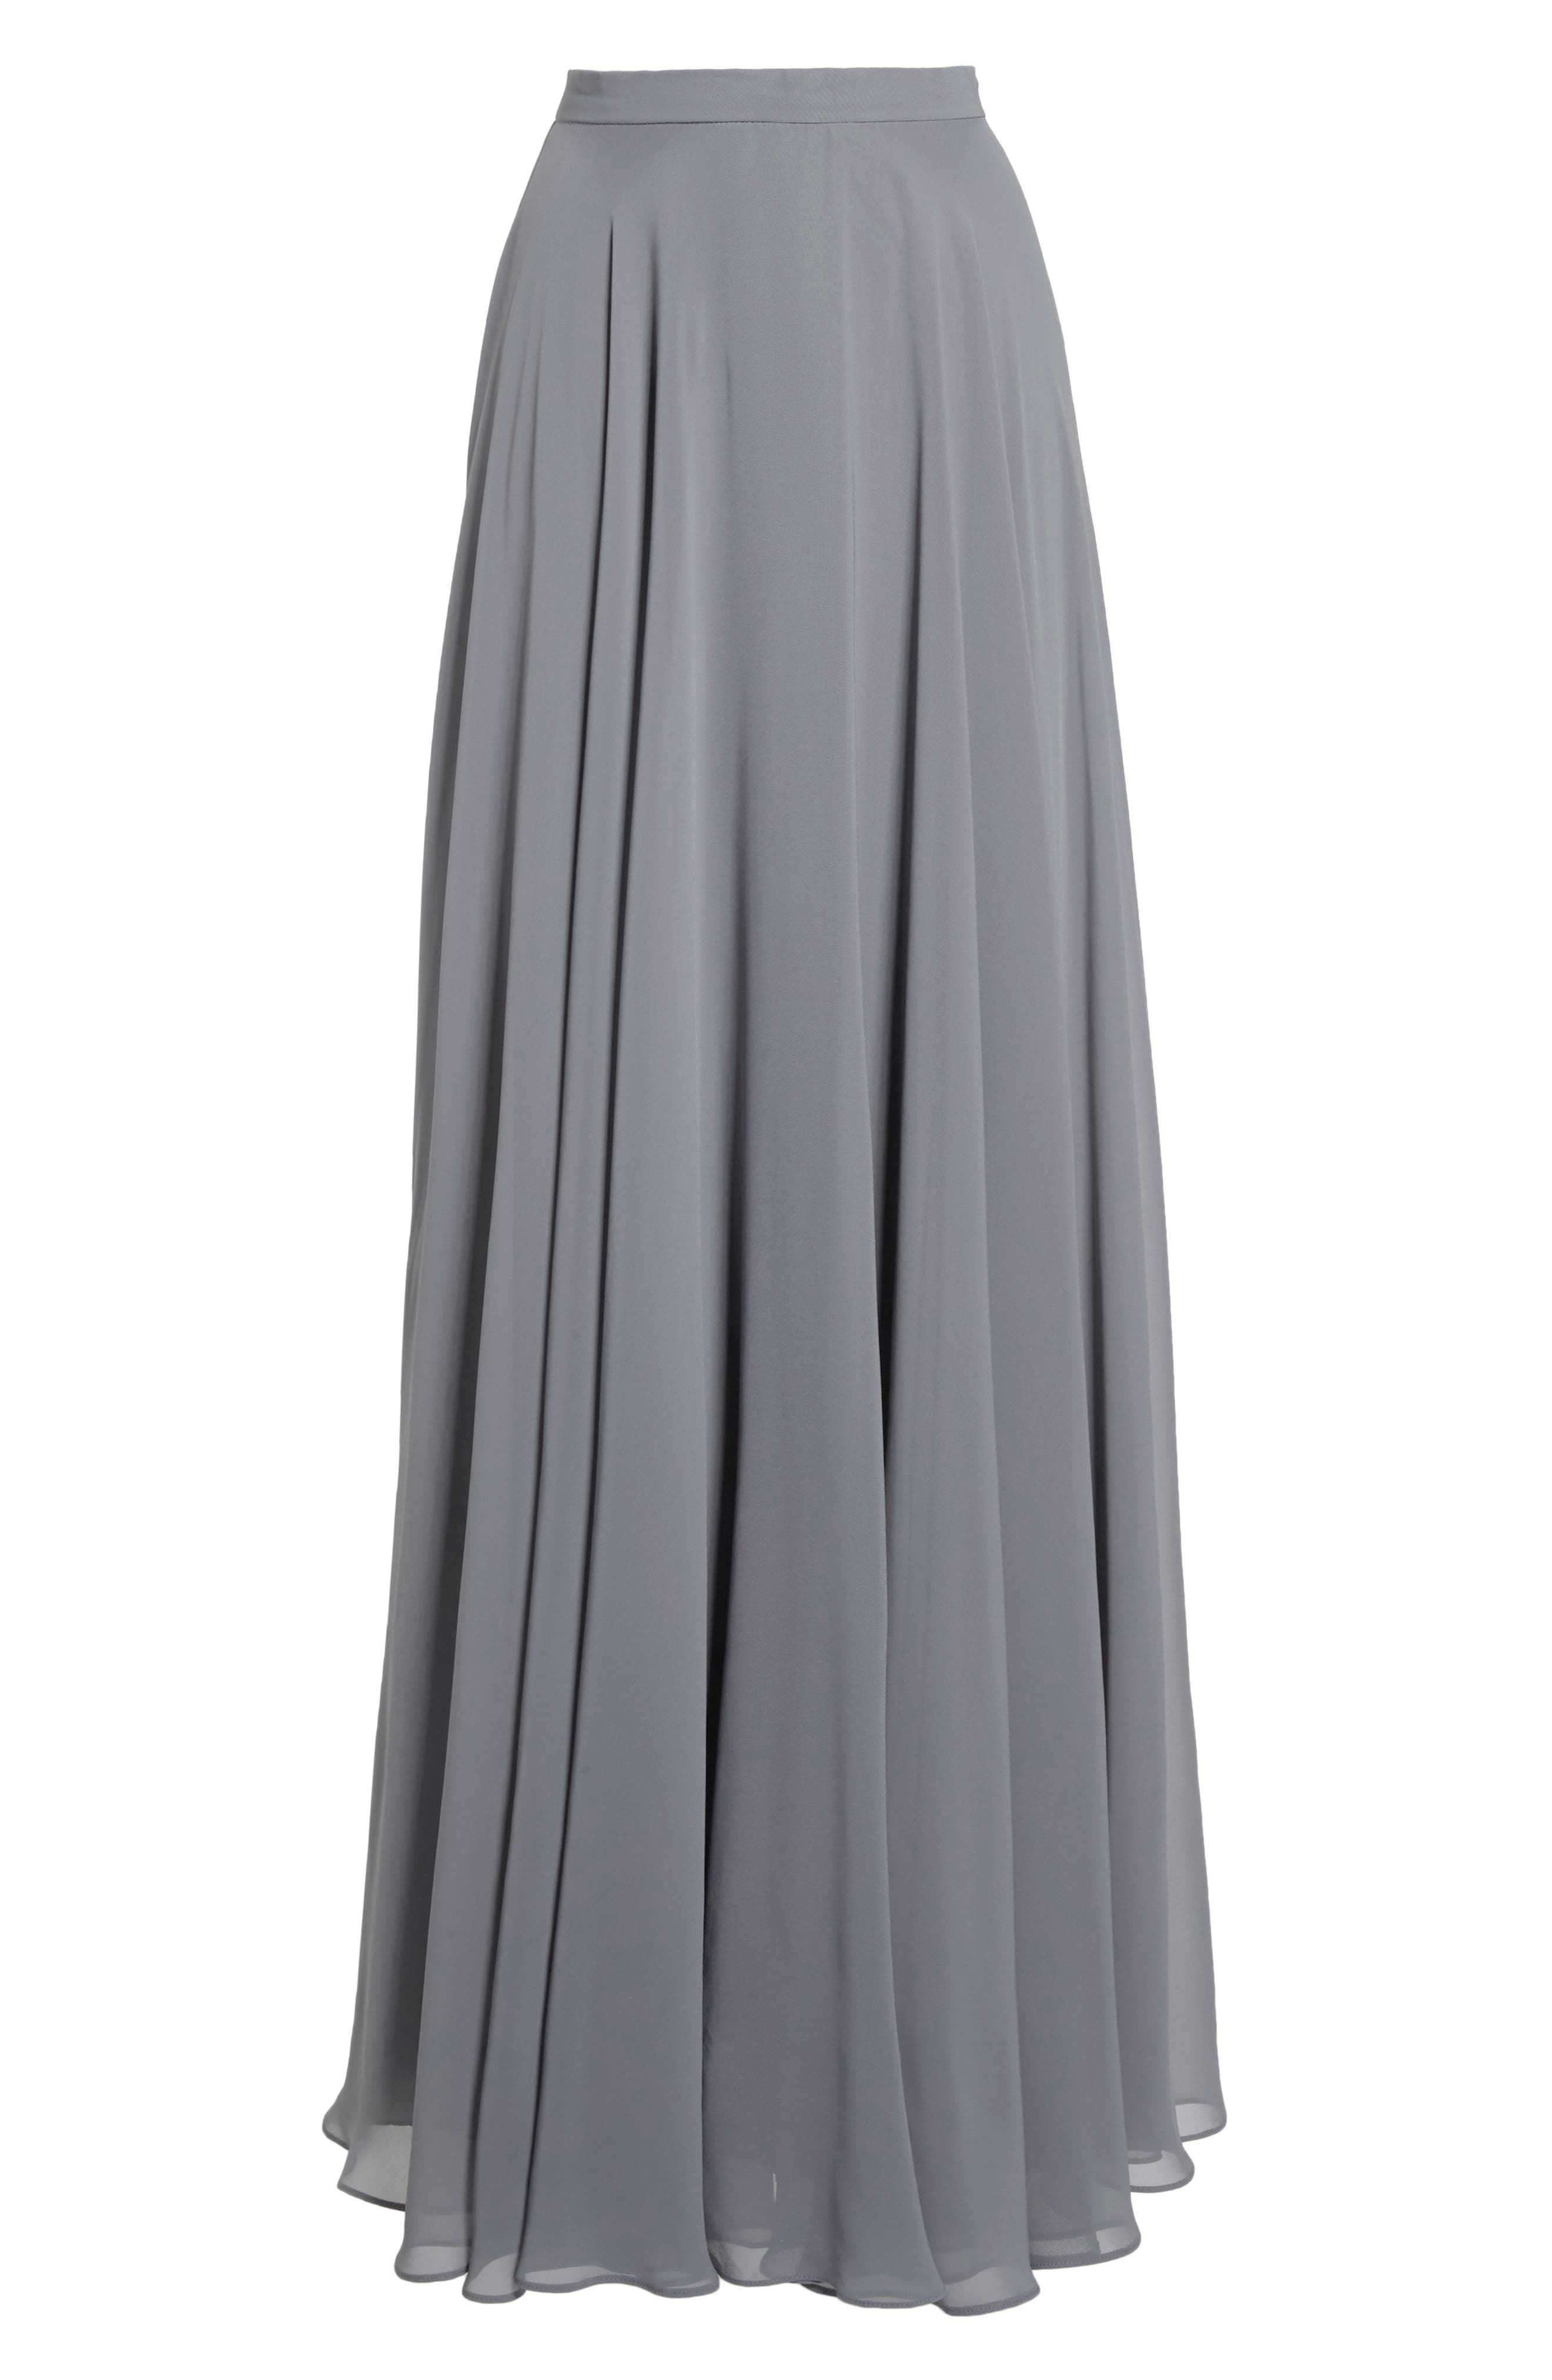 Hampton Long A-Line Chiffon Skirt,                             Alternate thumbnail 6, color,                             DENMARK BLUE